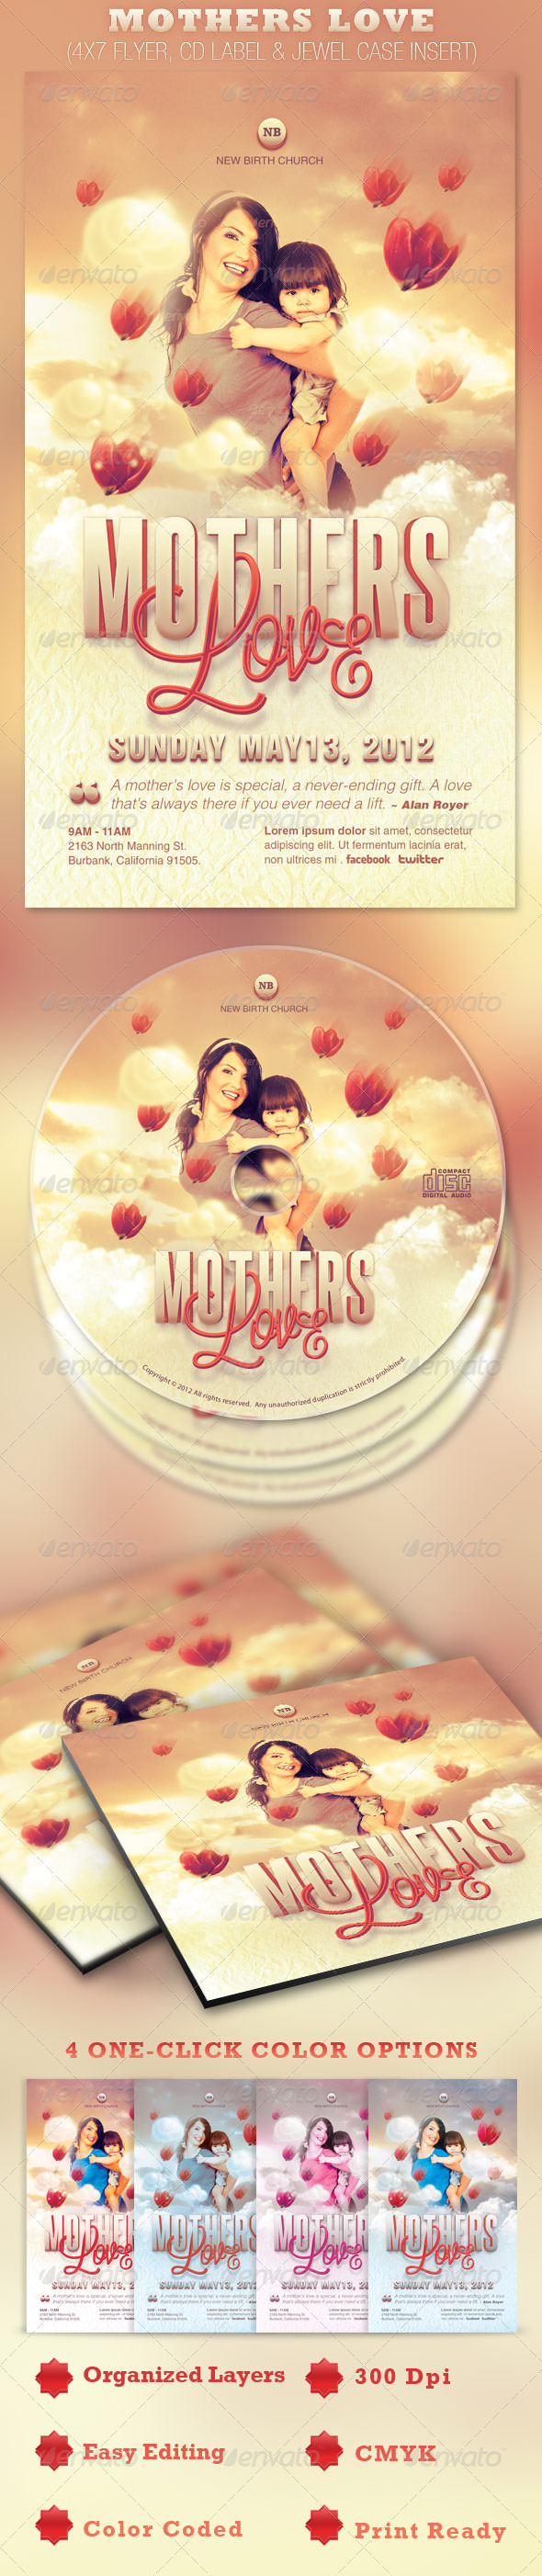 Mothers Love Flyer and CD Template - Church Flyers